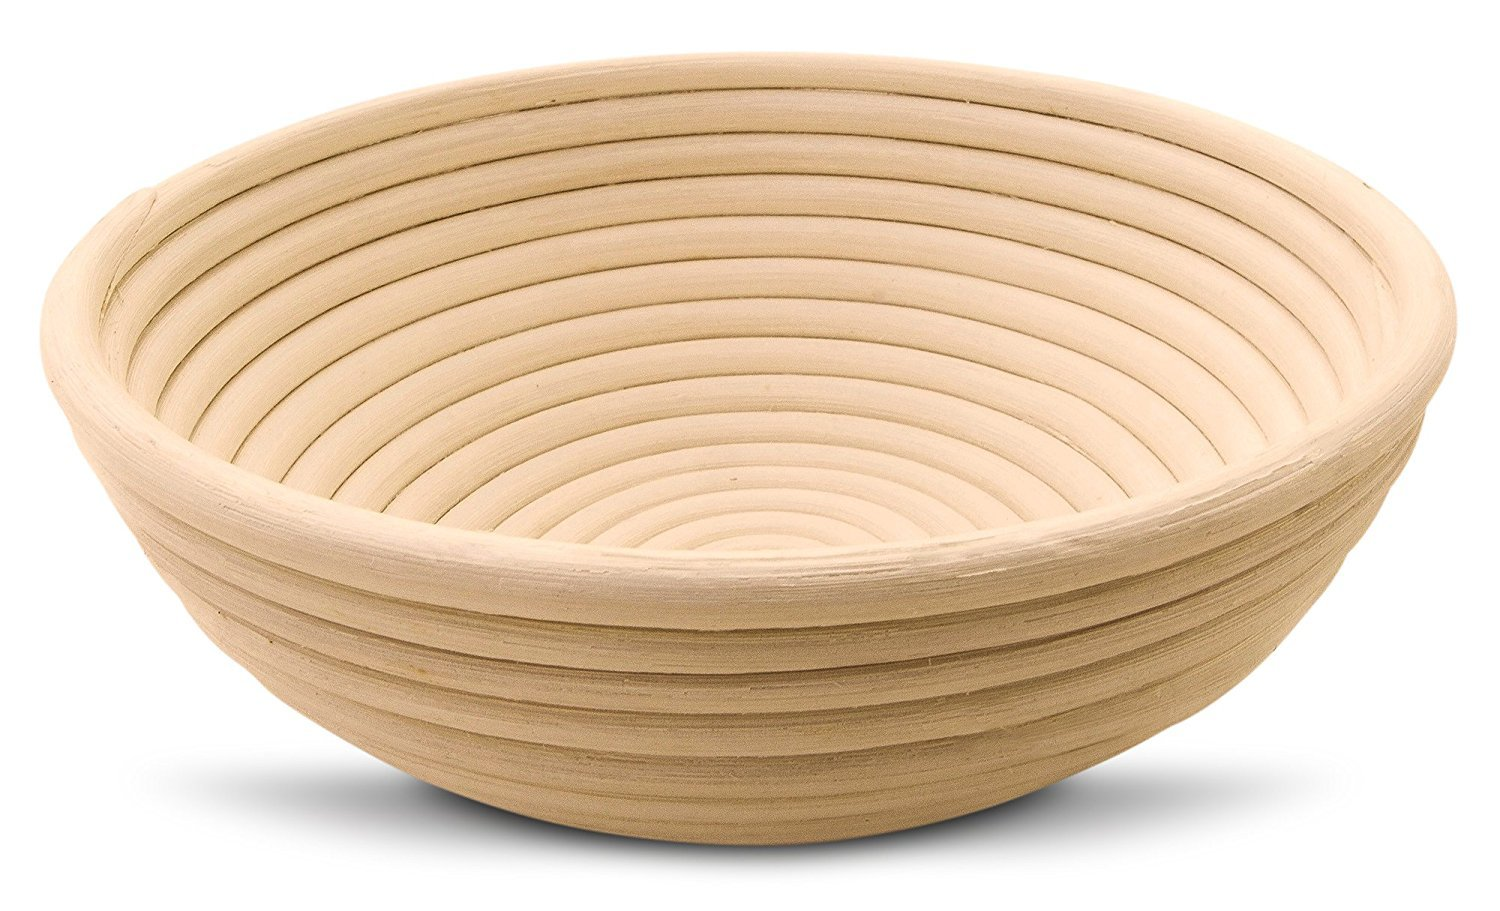 9 Inch Round Banneton Proofing Basket for Artisan Bread And Dough. E-Book Included With Instructions, Ideas And Recipes. Eco-Friendly Rattan Cane Brotform With Rising Pattern For Artisan Baking. Pingo Gear SYNCHKG091514